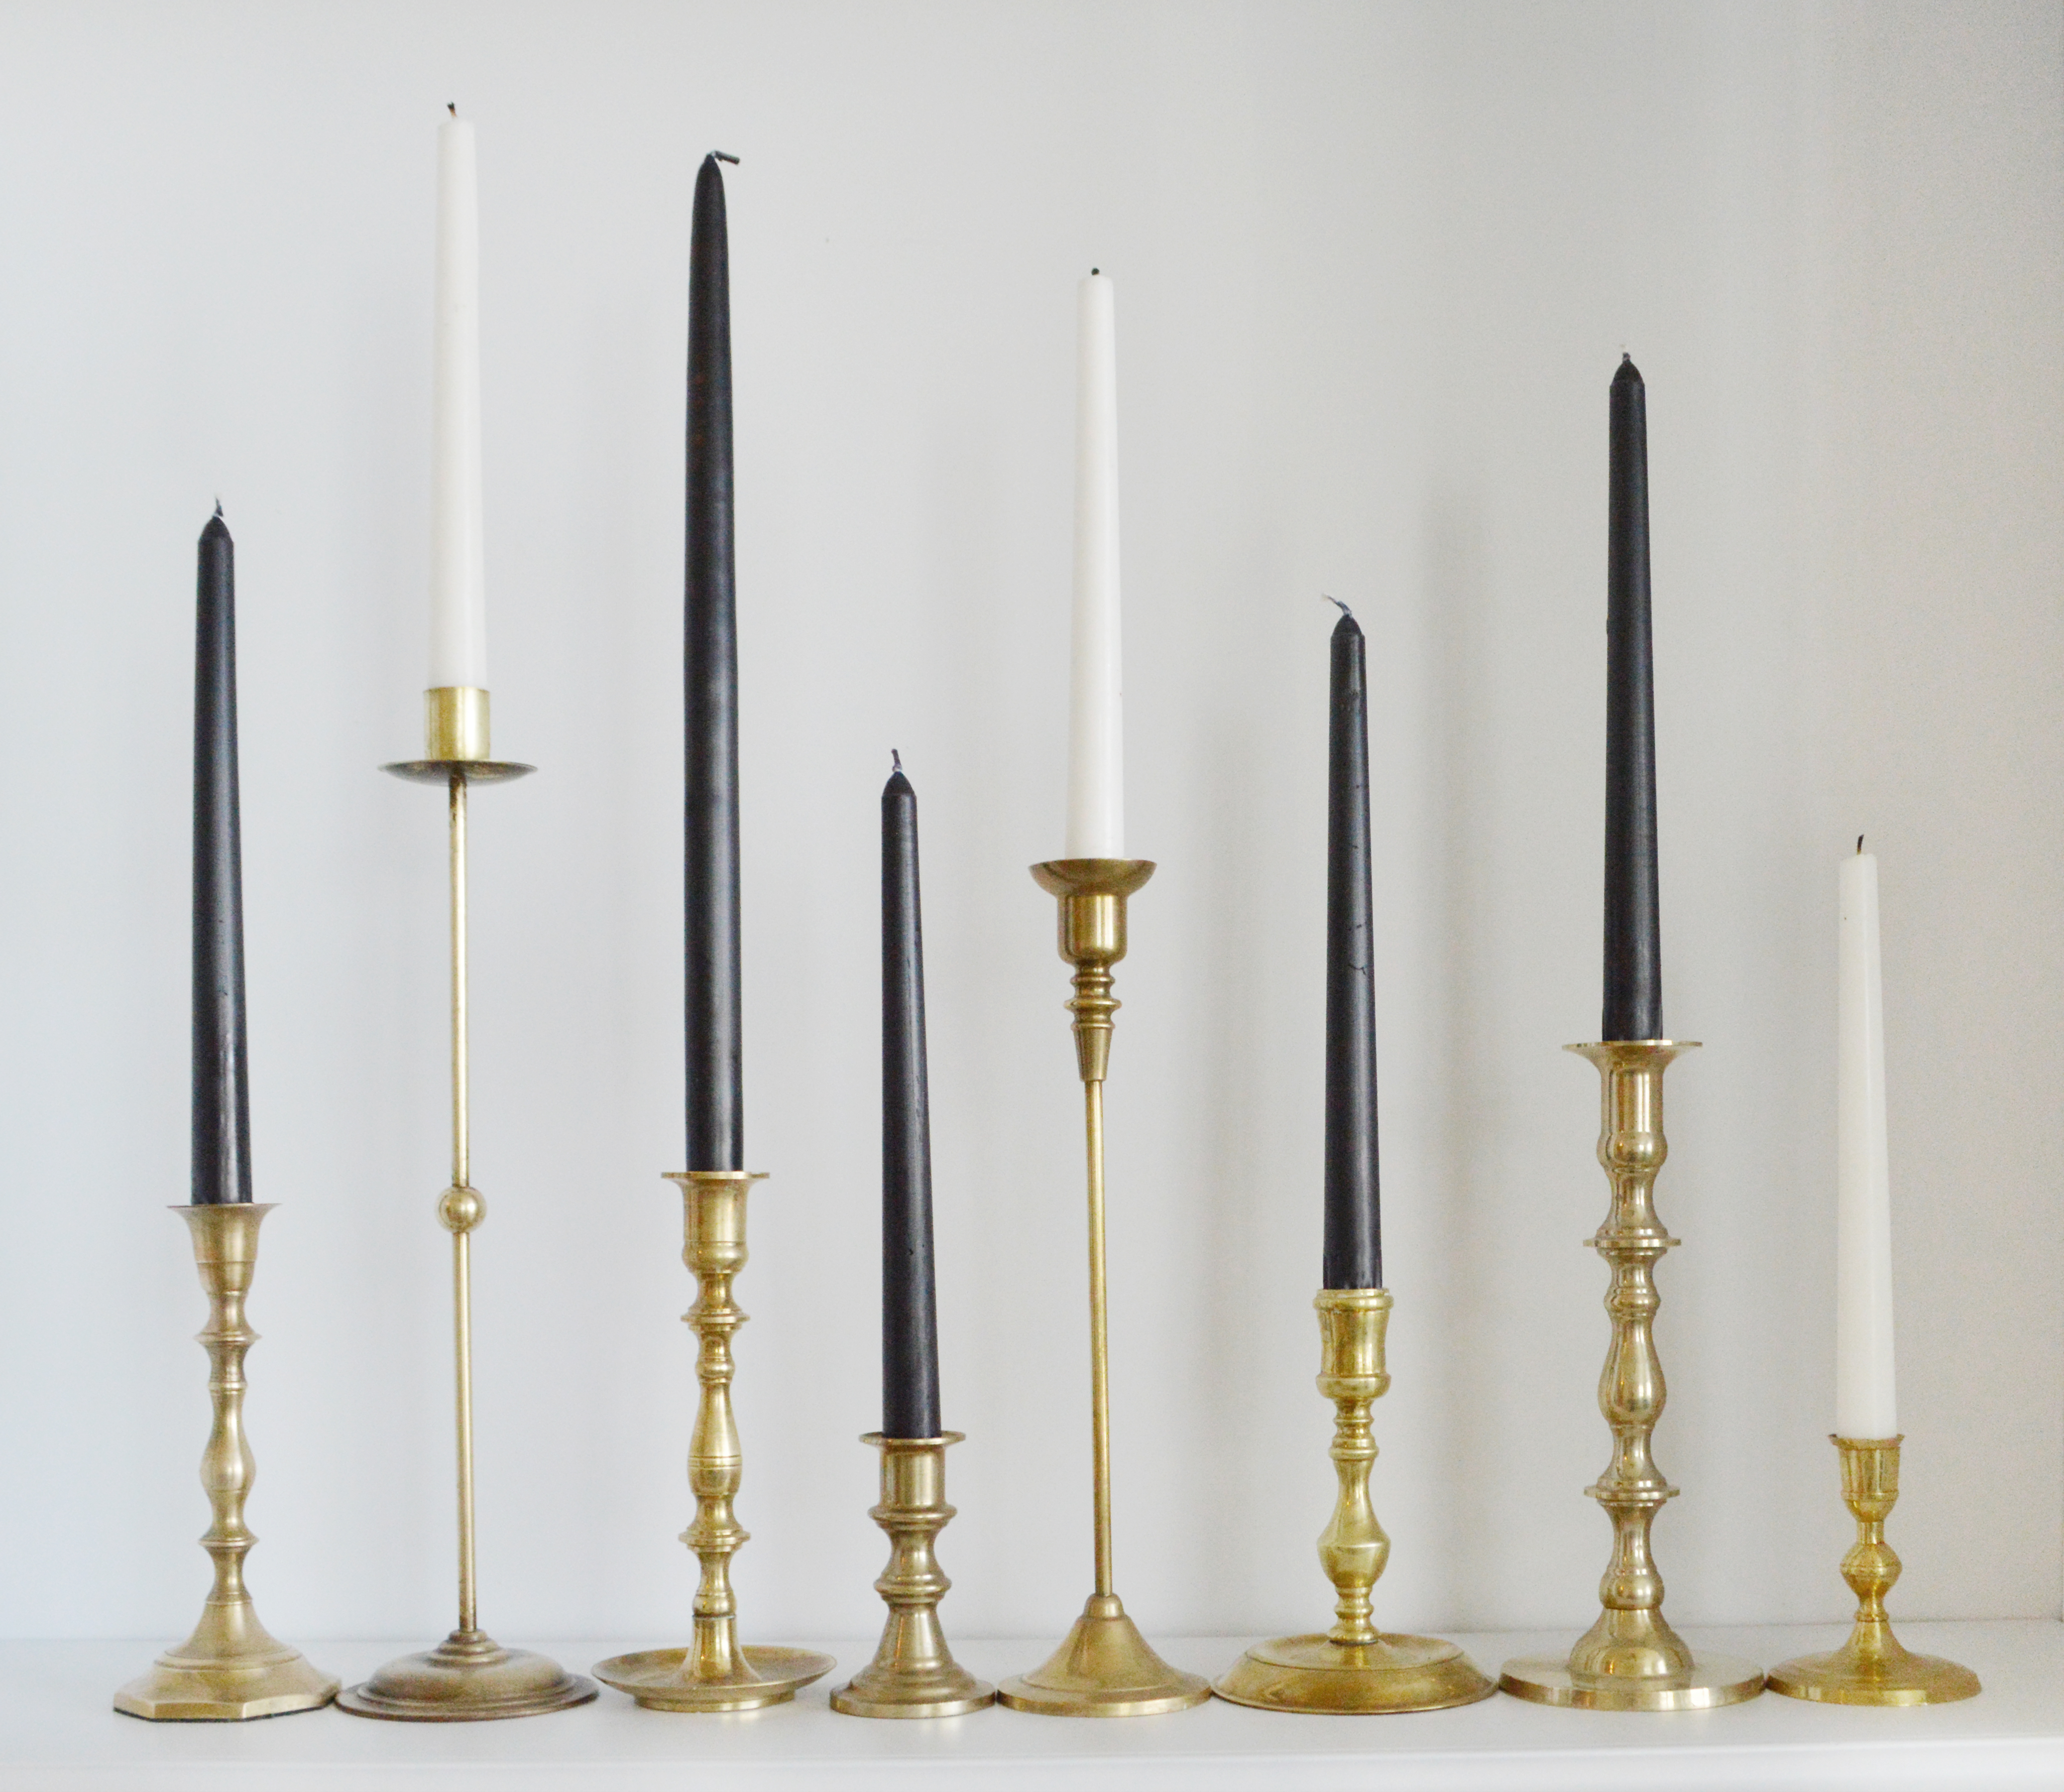 brass candlestick lined up